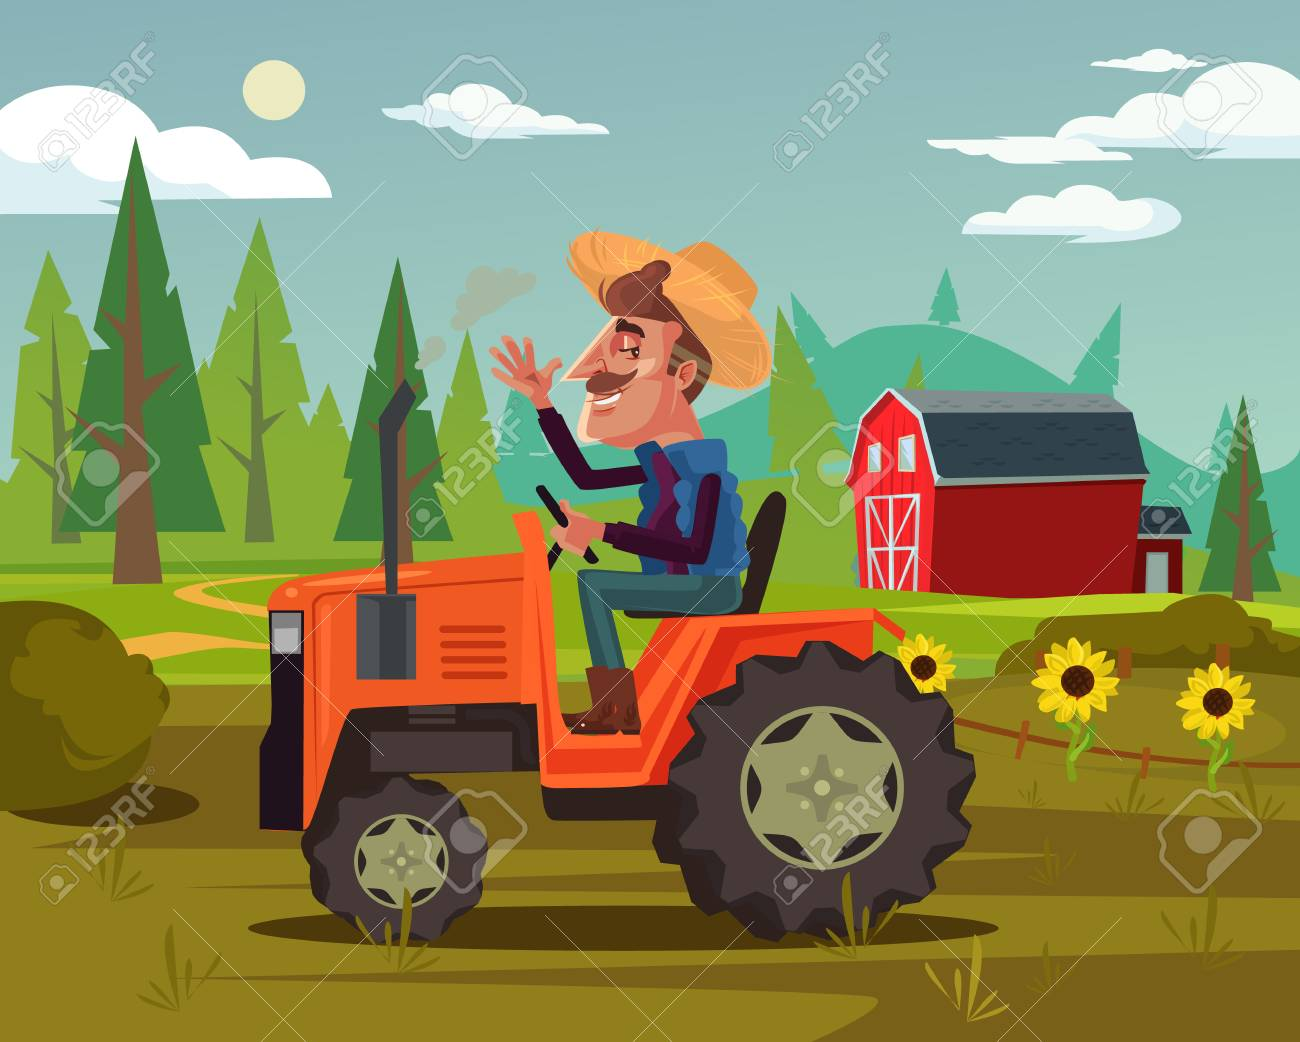 Happy smiling farmer. Agriculture farming country side flat cartoon graphic design concept illustration - 103775934